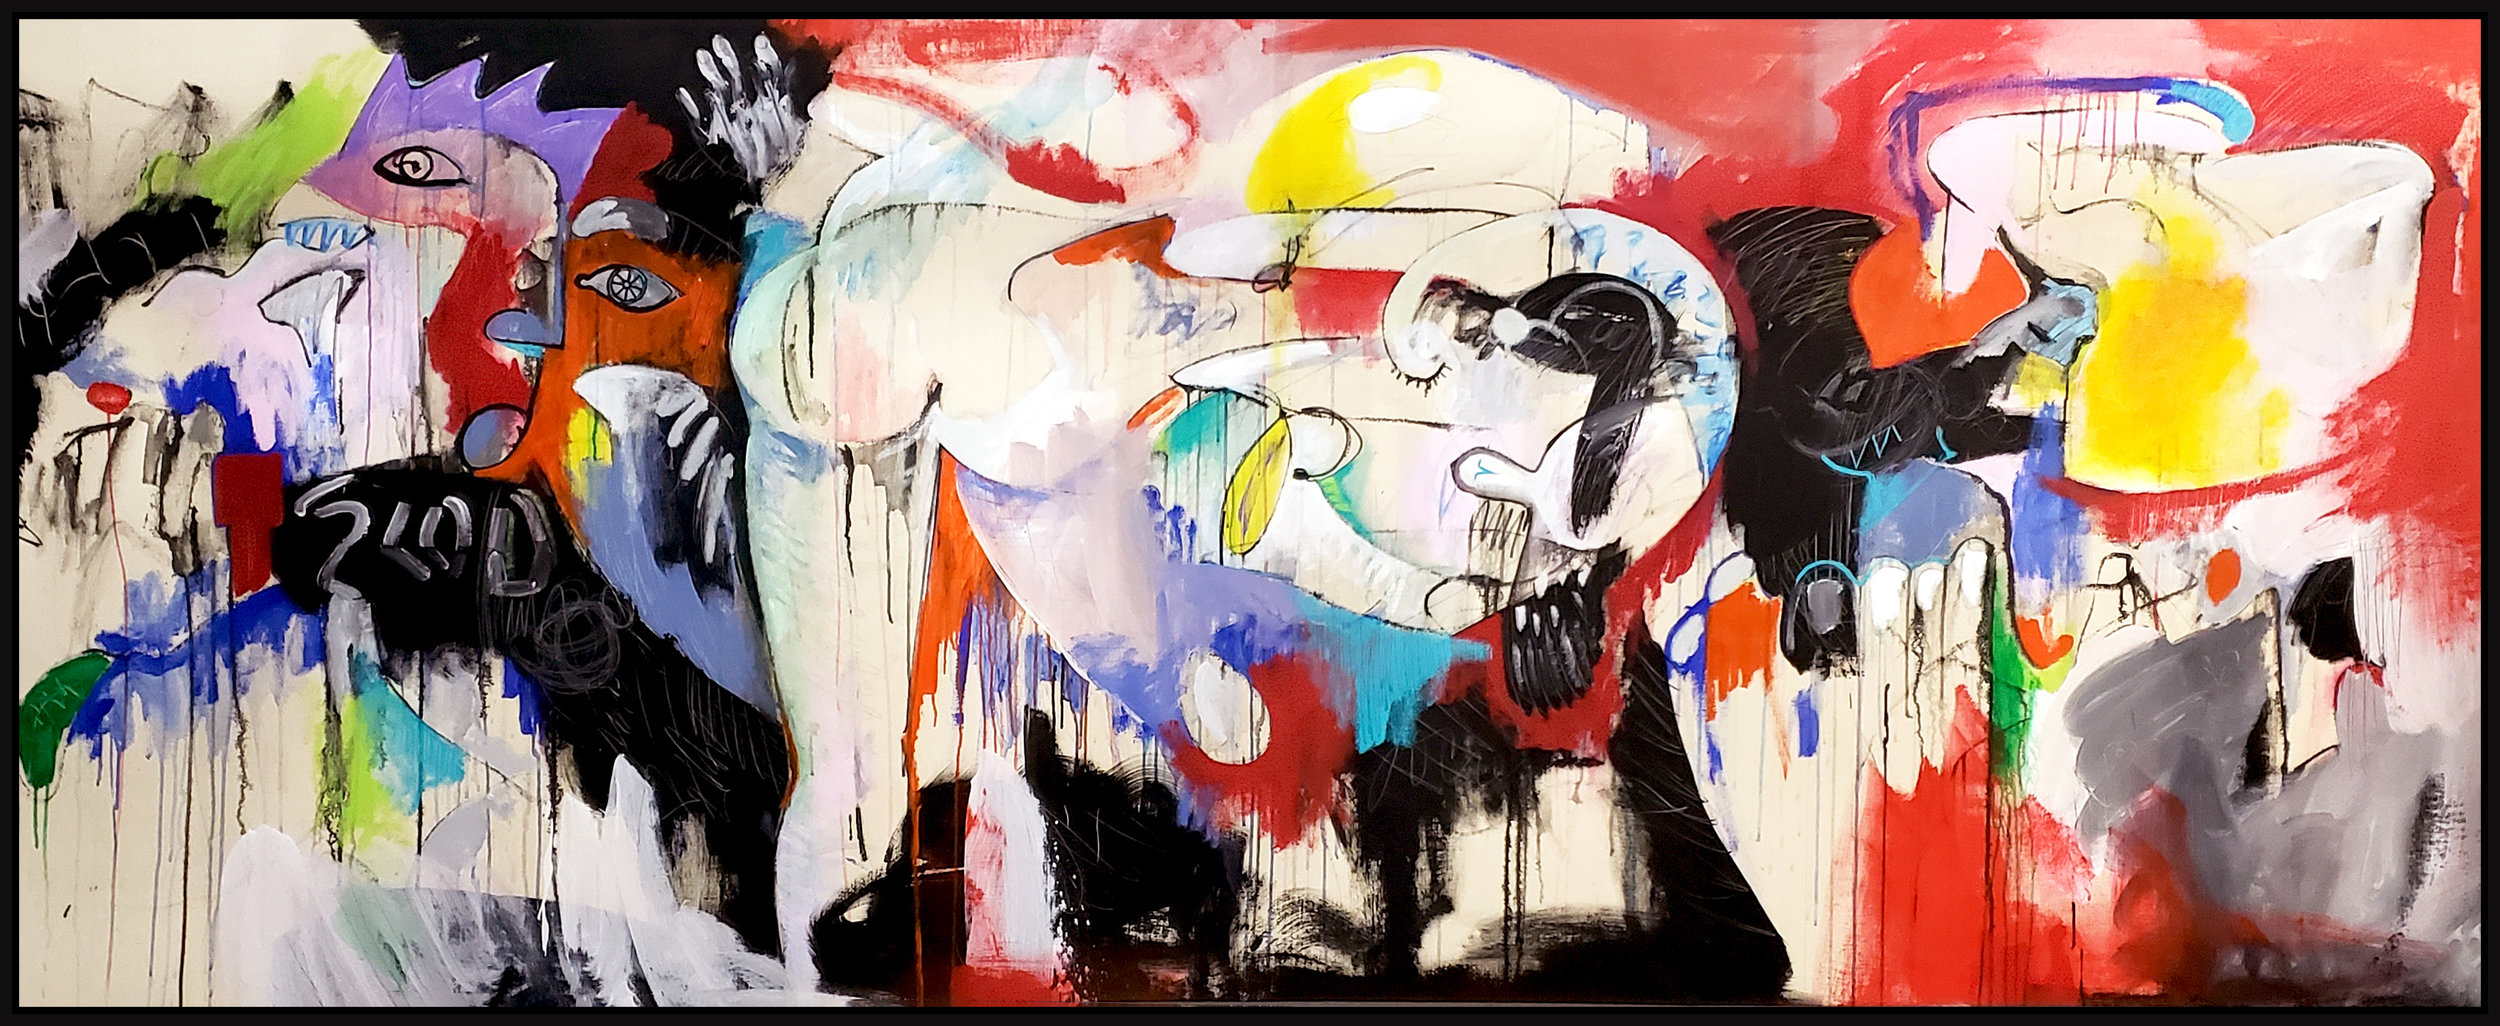 "Untitled #116, 2019, acrylic on canvas, 48"" x 120"" (122 x 305 cm)"